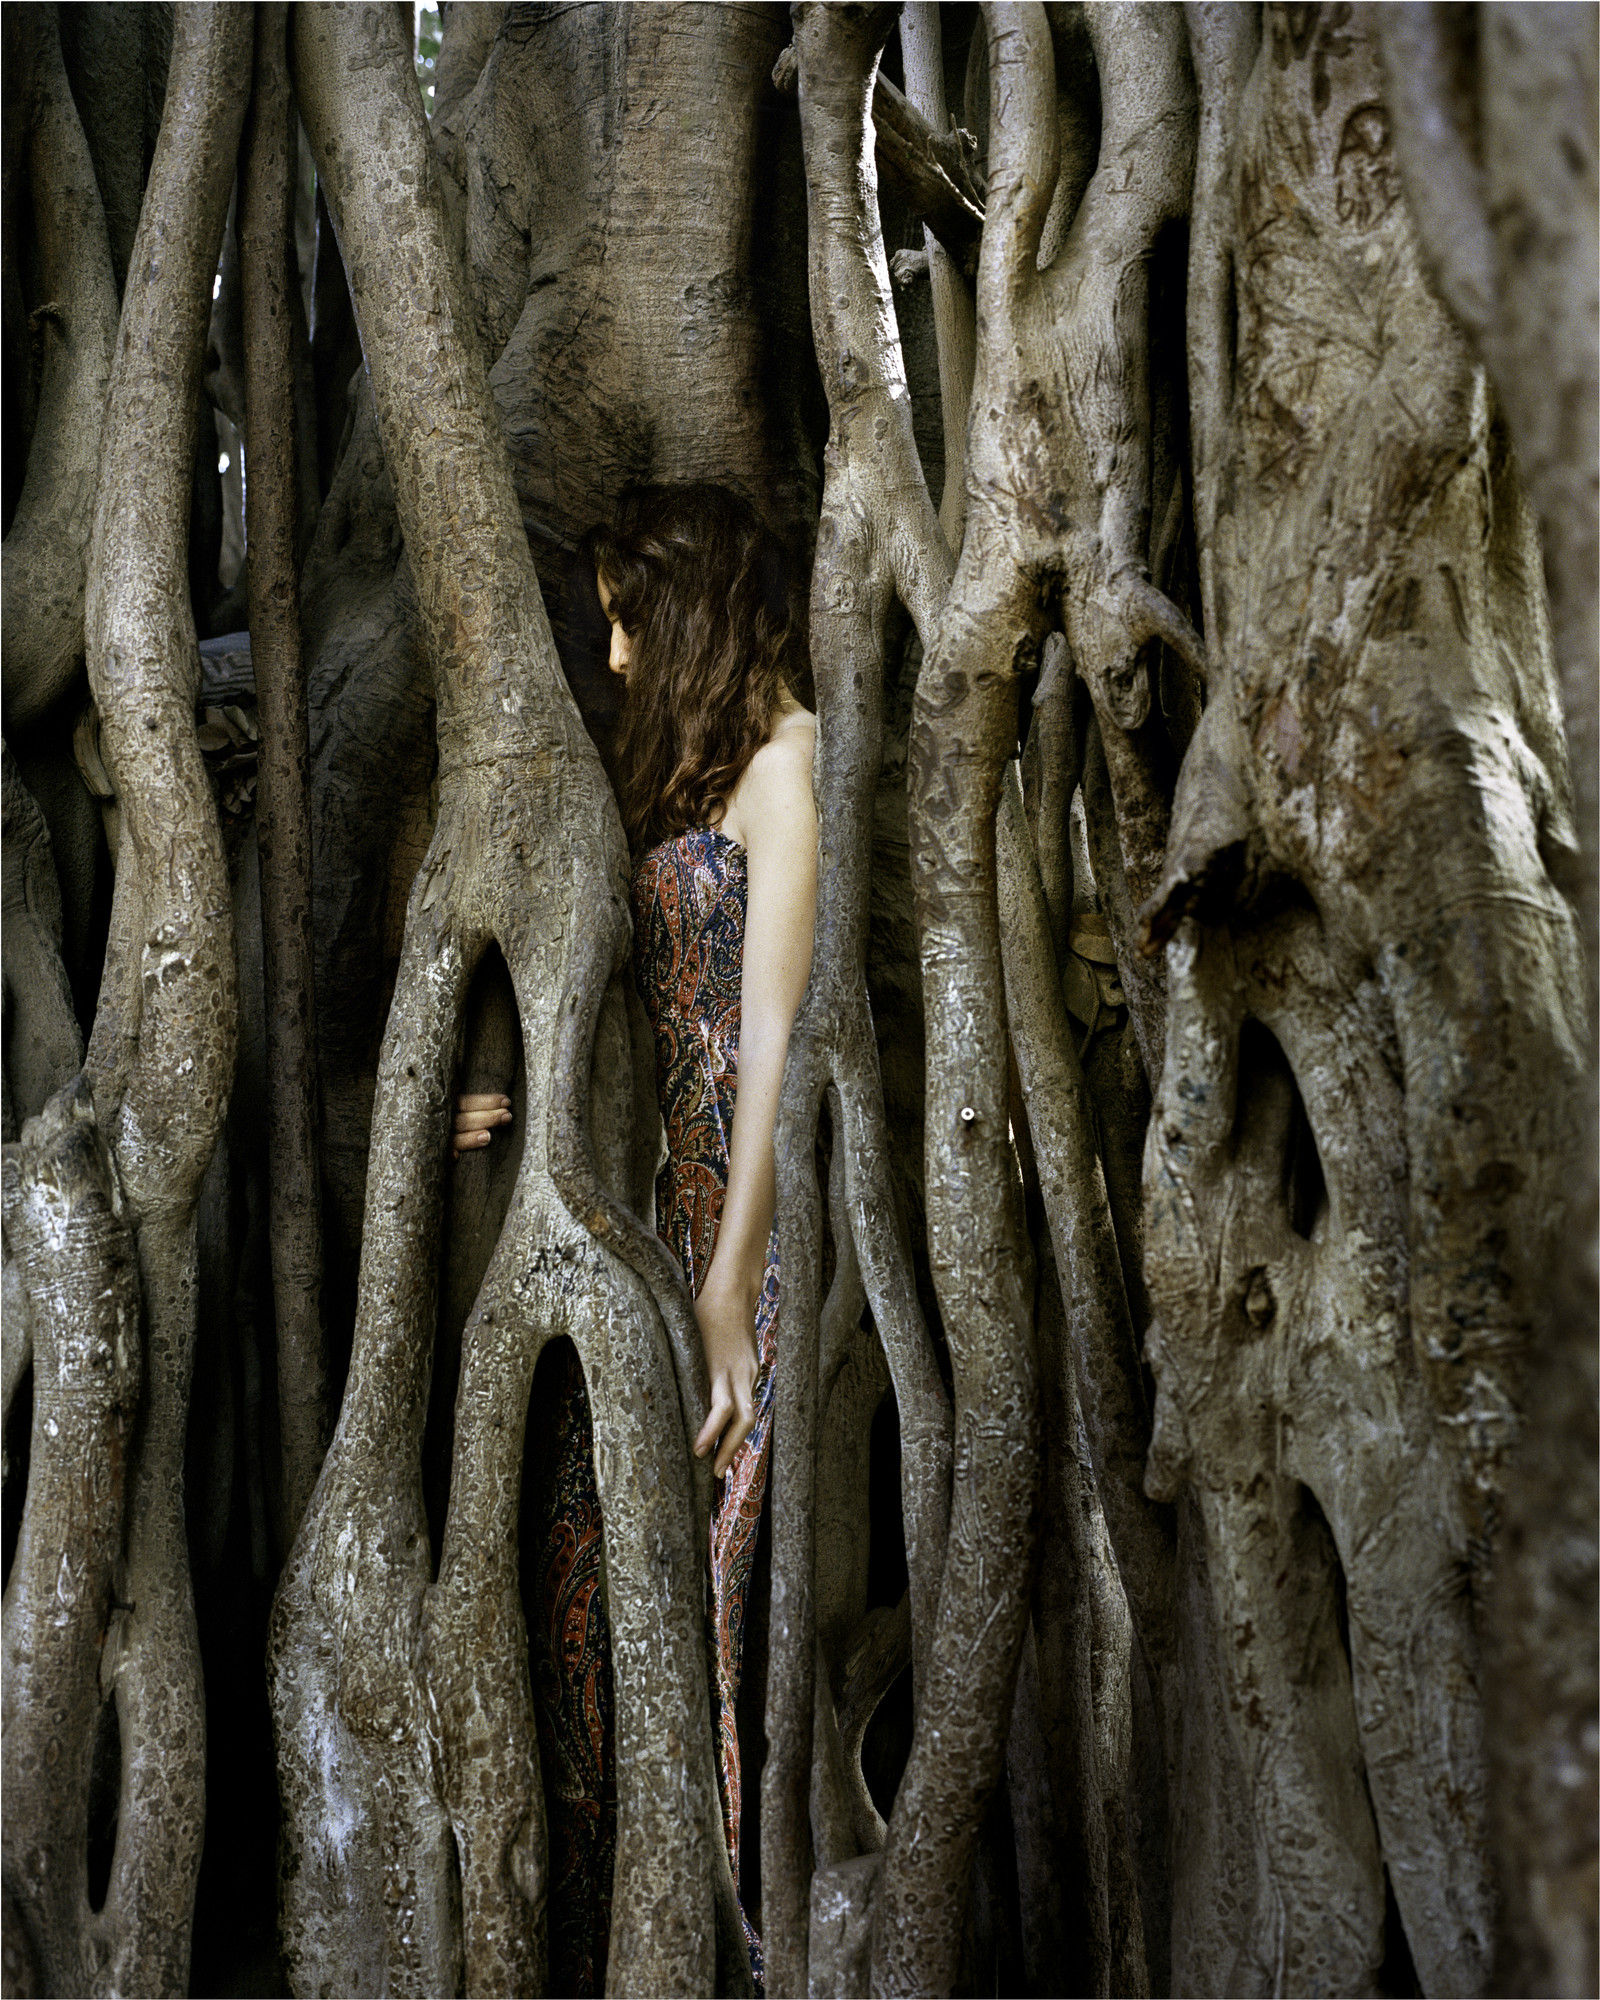 Close cropped color photograph of a light-skinned woman with auburn hair standing tucked into the large roots of a tree. The woman in standing in profile and her head is bent with her hair covering her face.